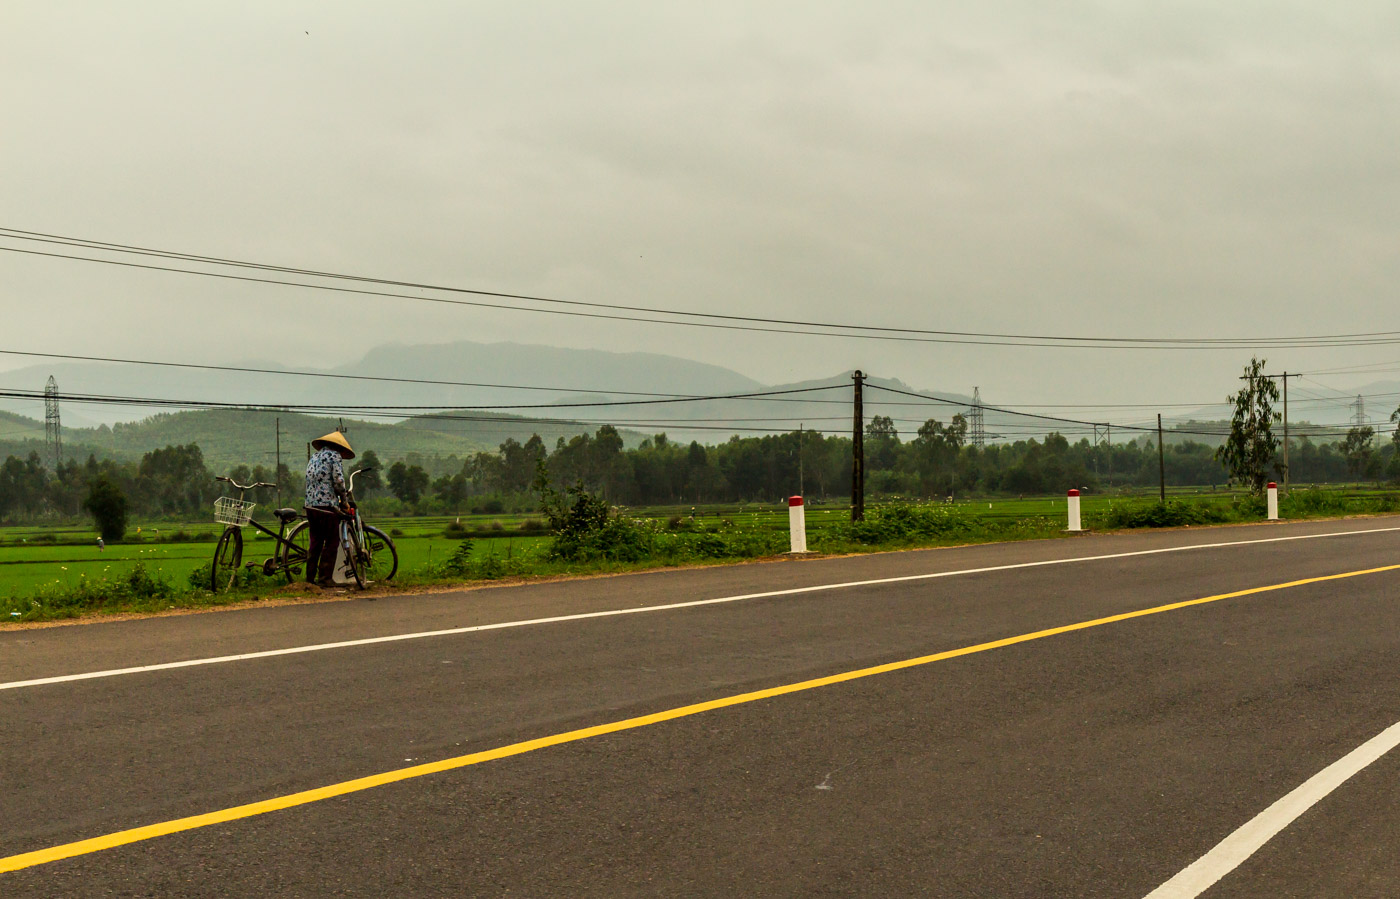 The busy highway passed through rural landscape.